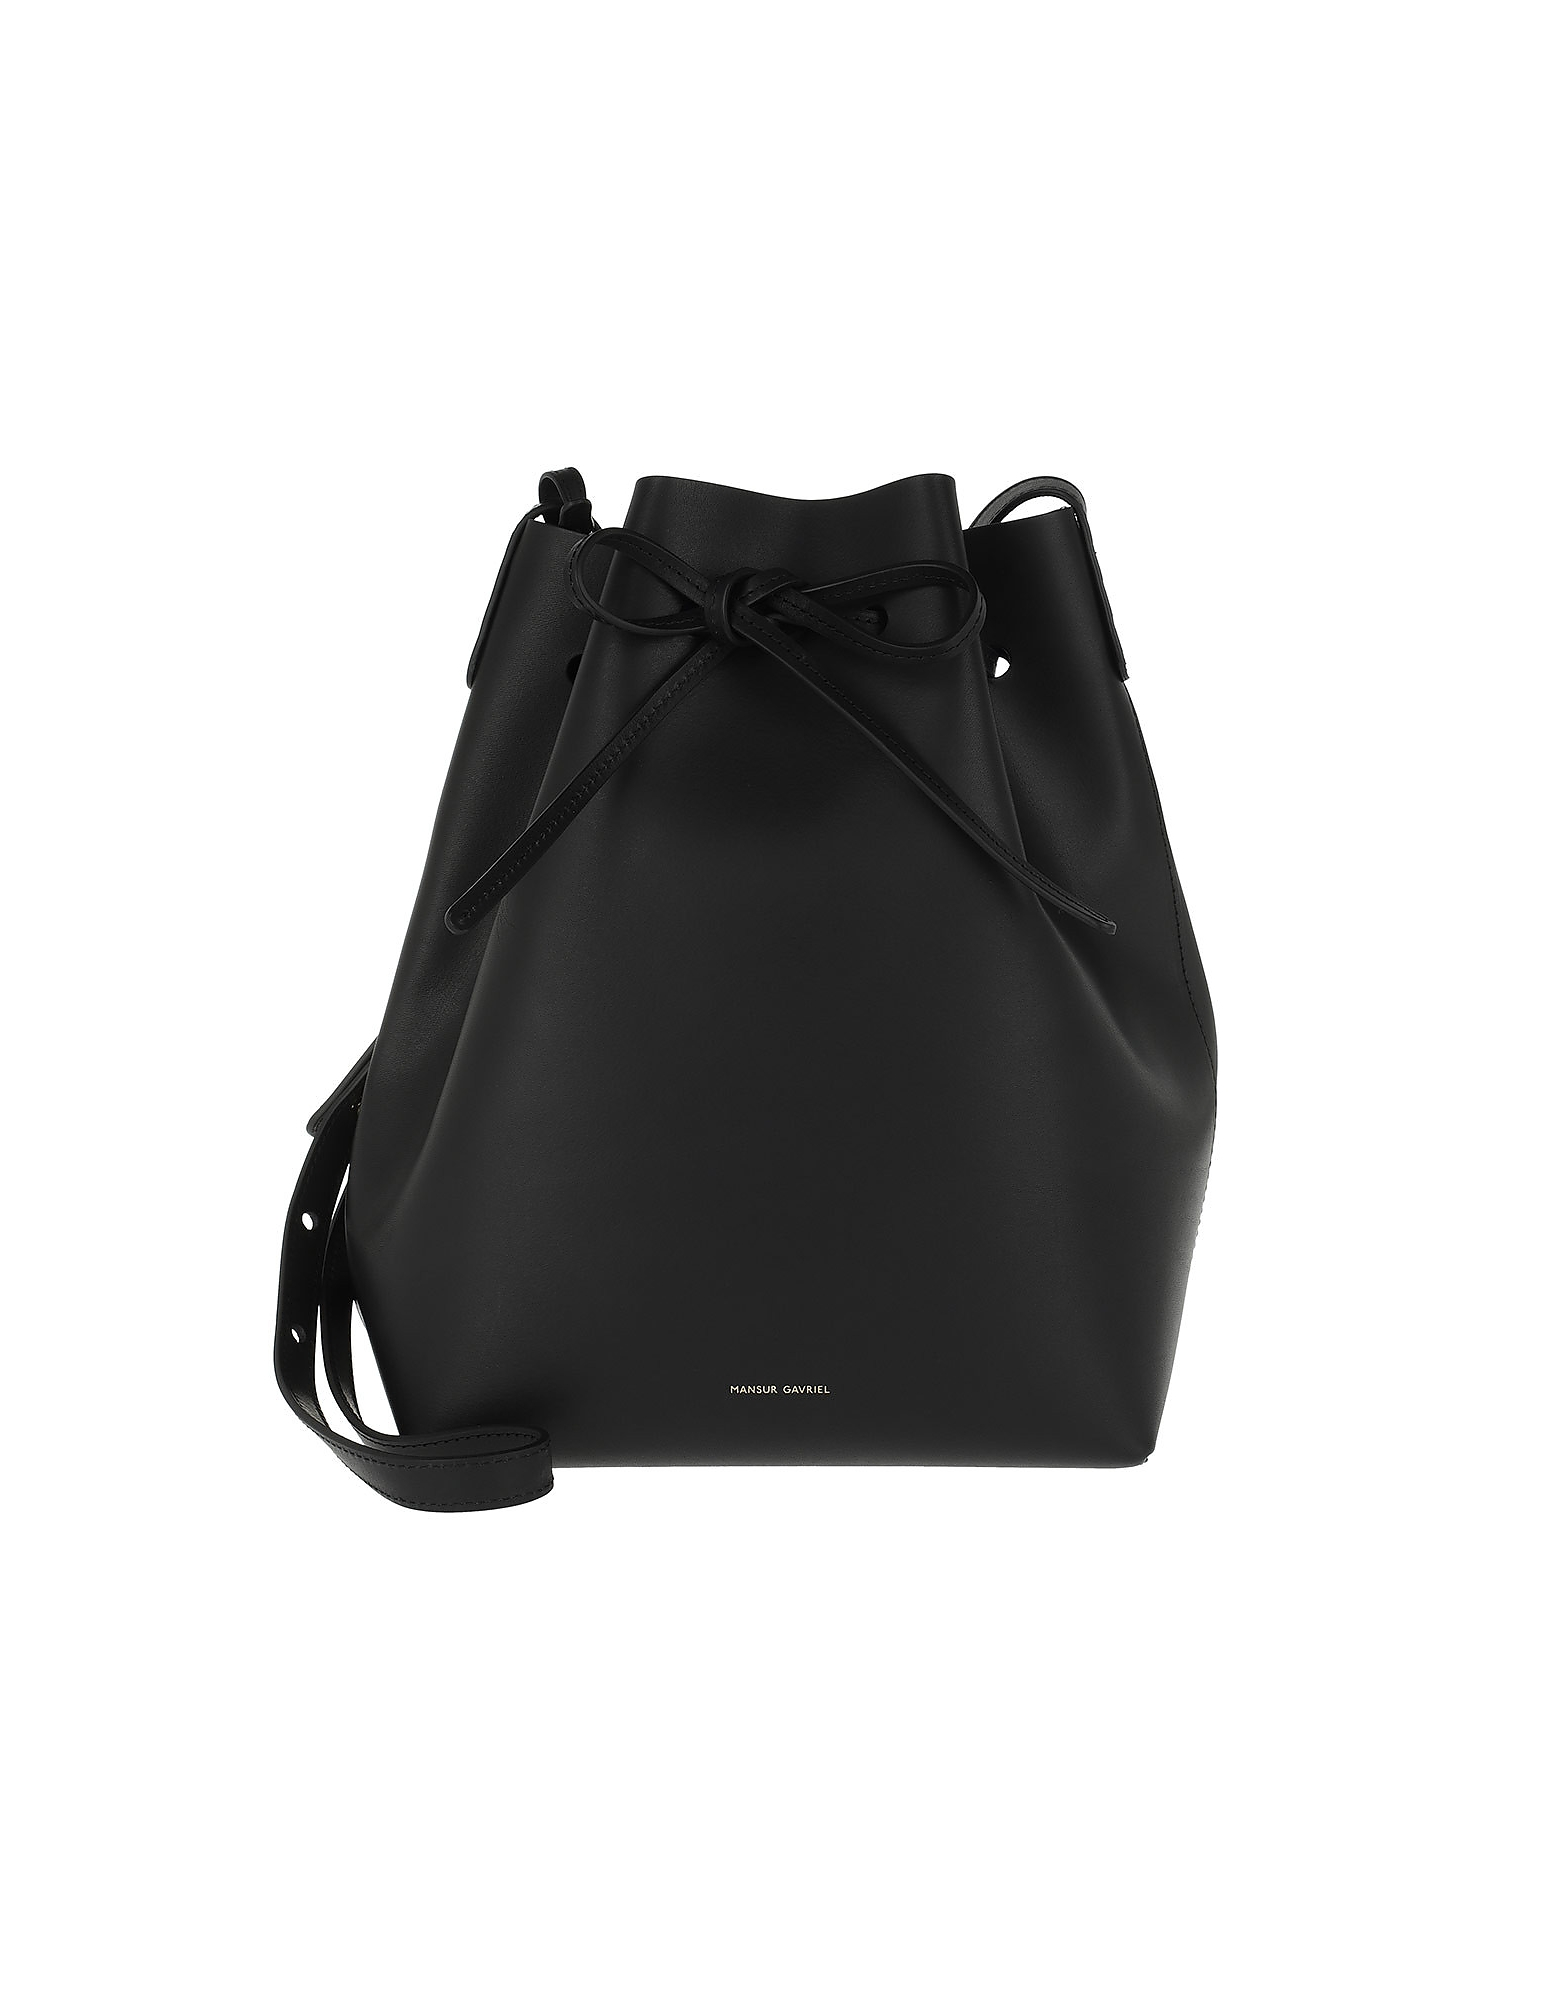 Mansur Gavriel Handbags, Classic Bucket Bag Black/Royal